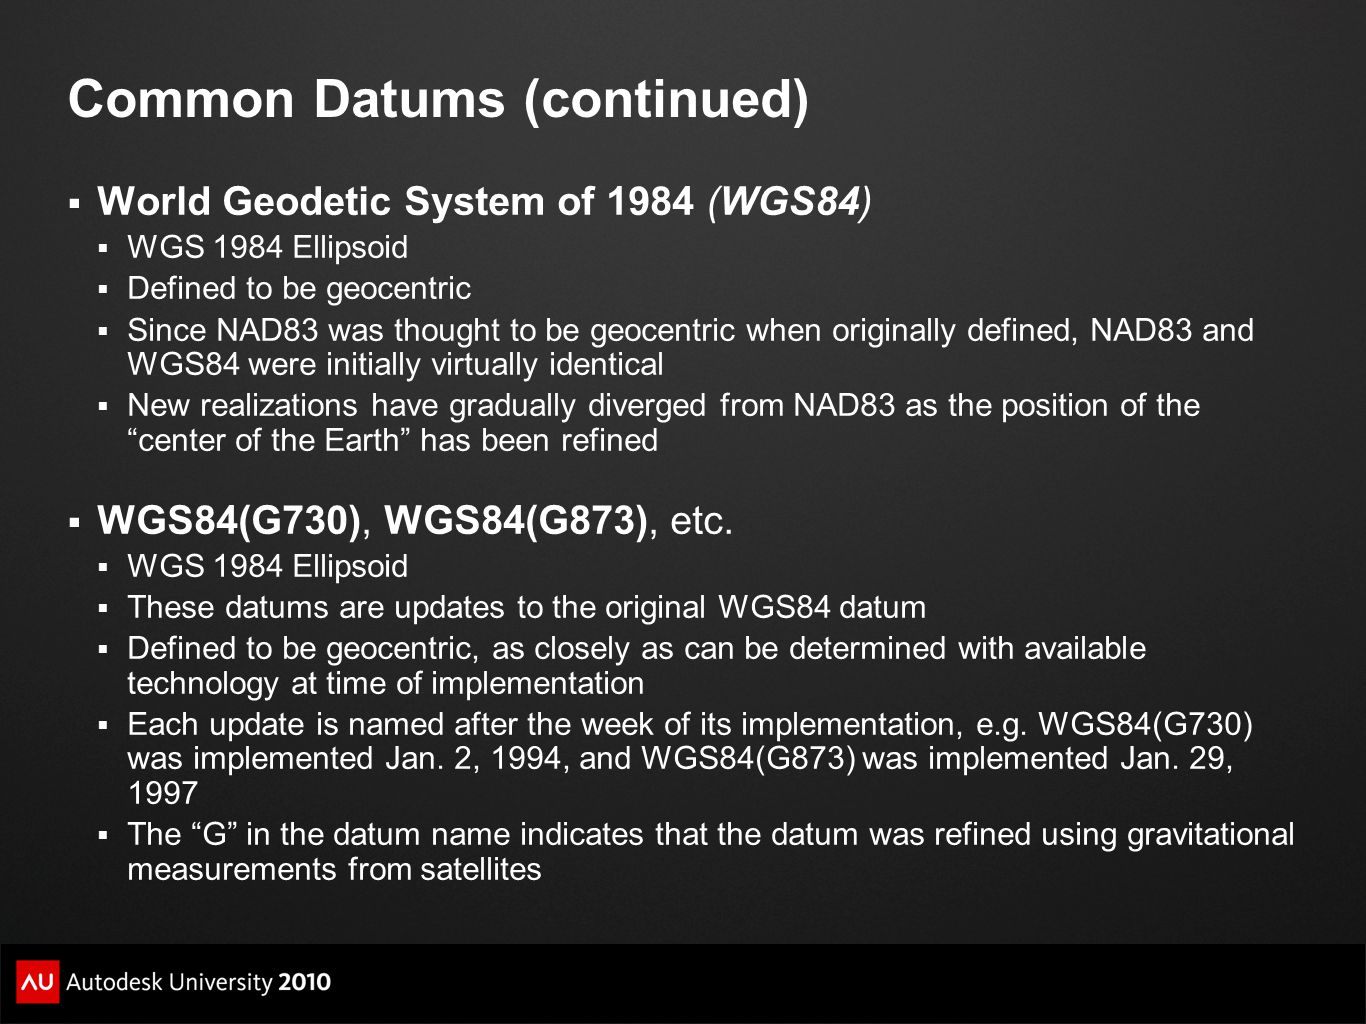 Common Datums (continued)